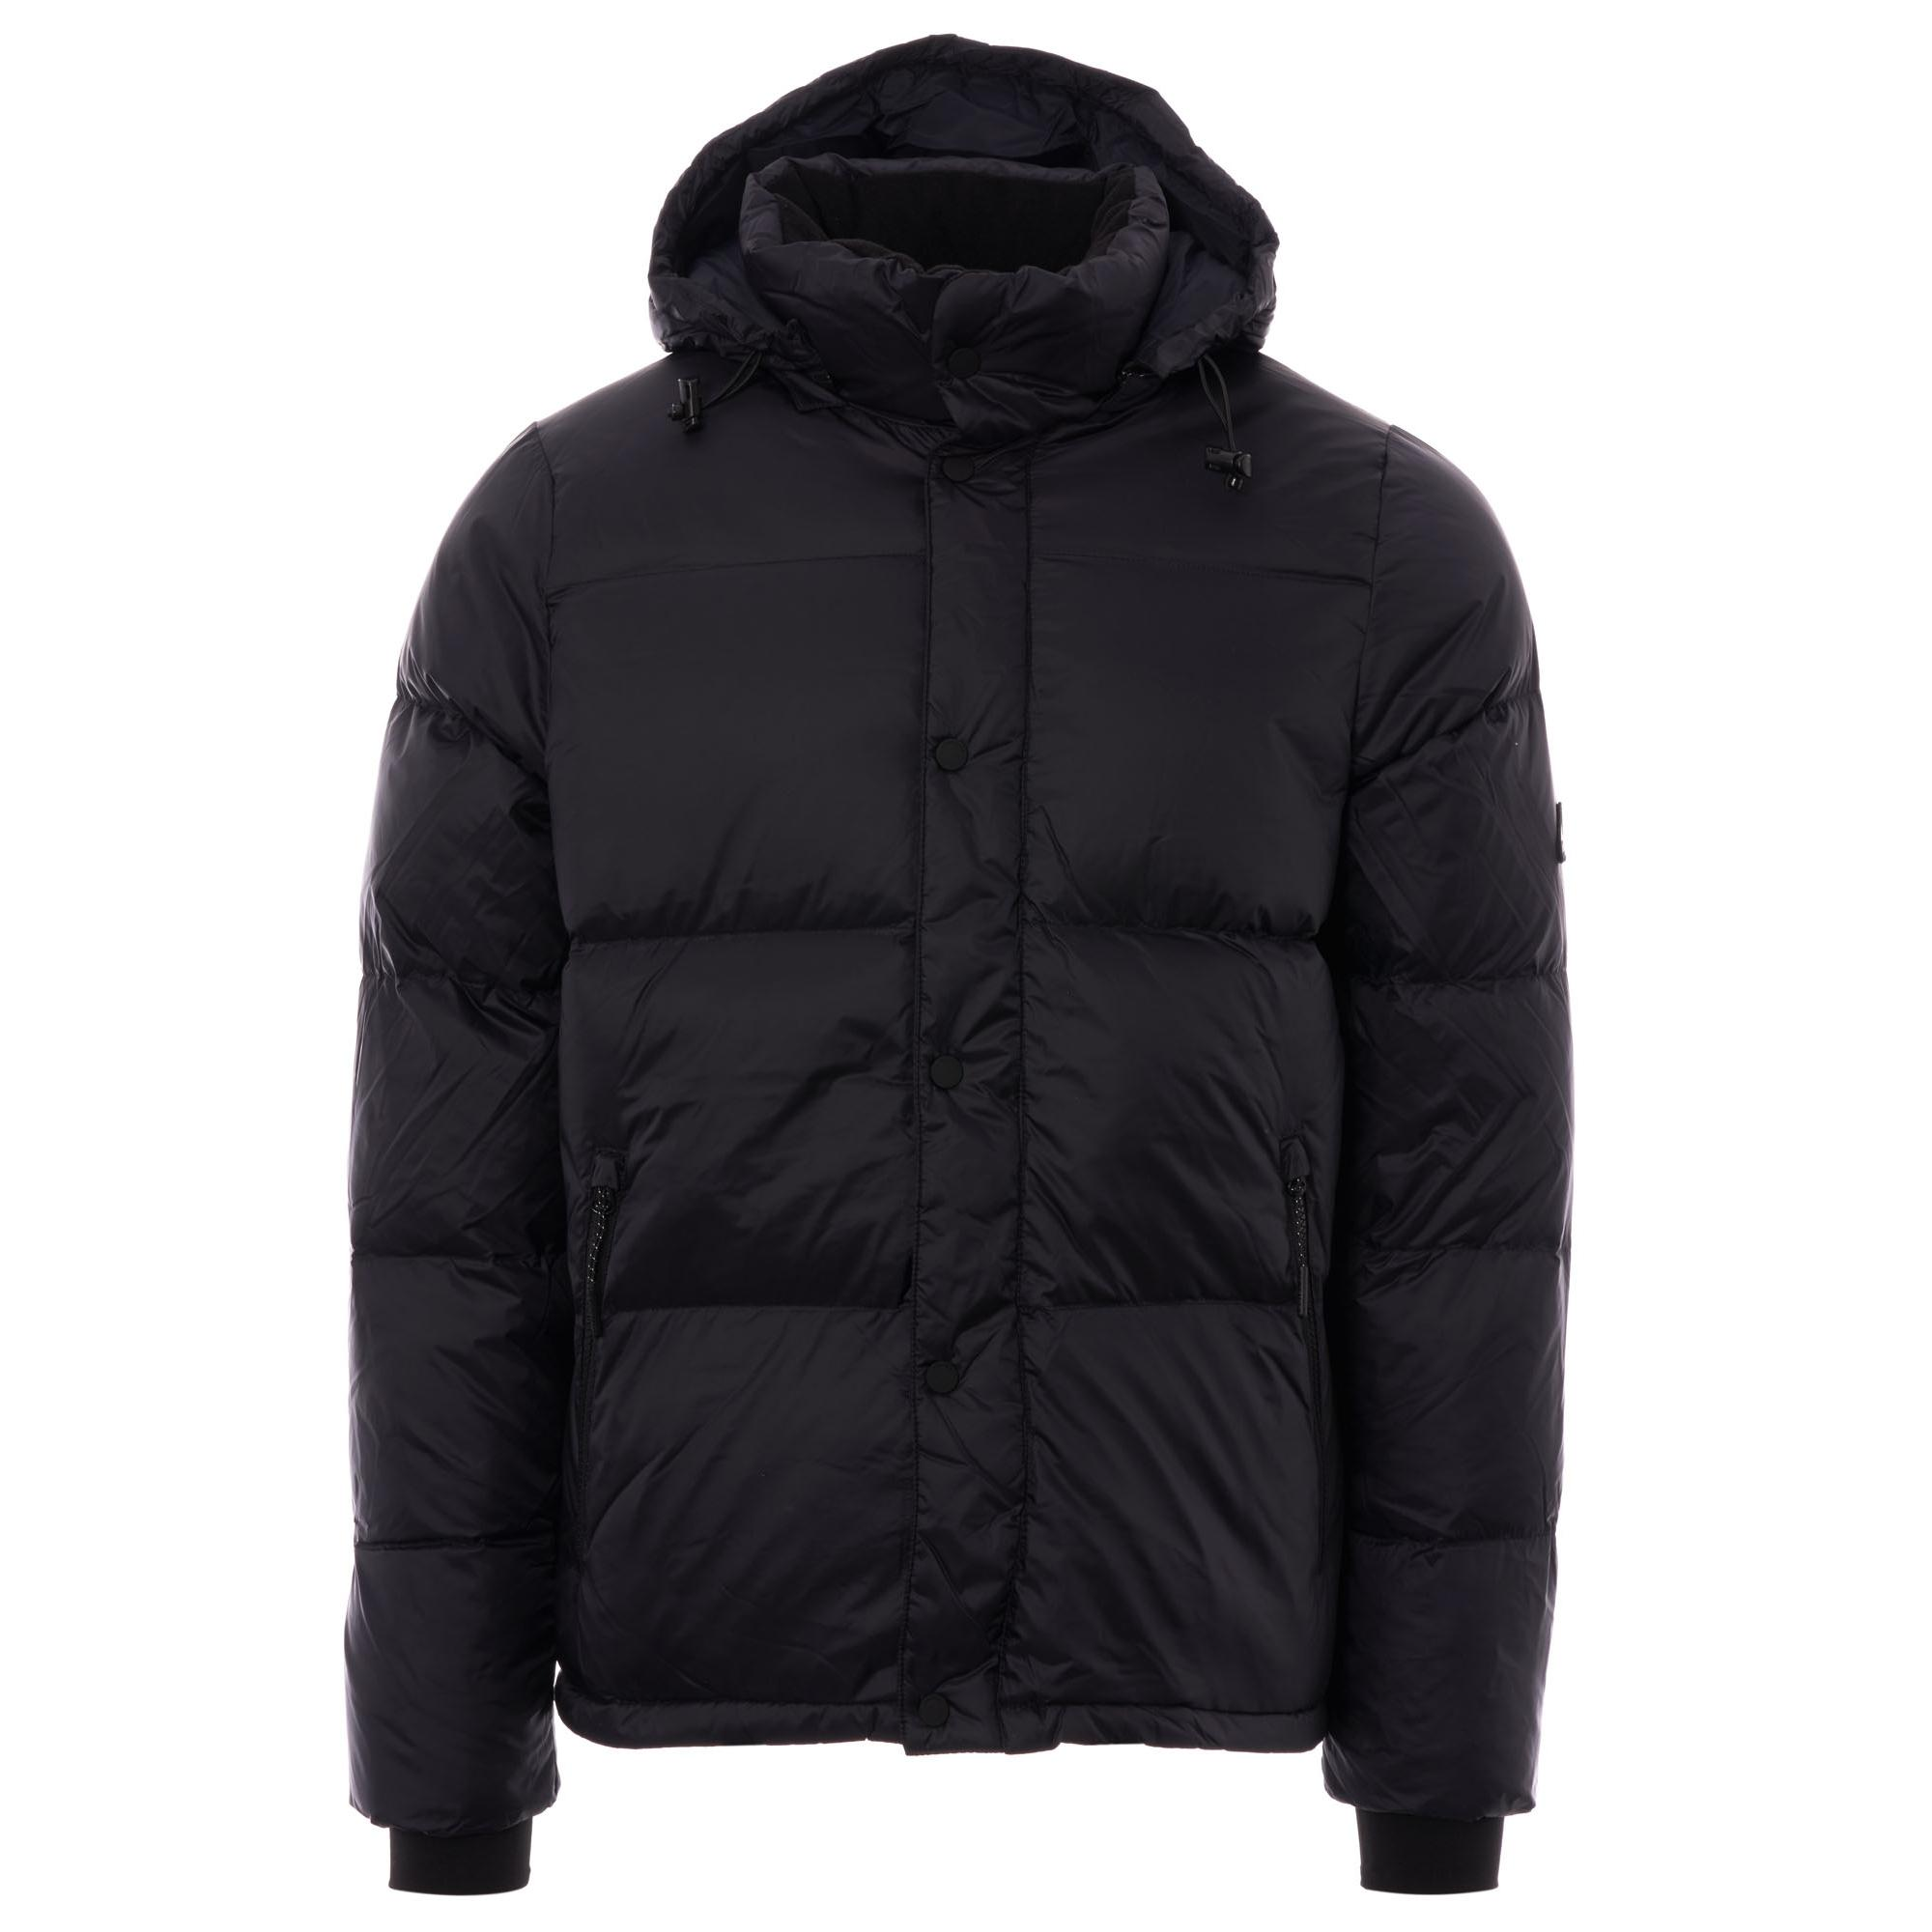 1aa78add6 Penfield Equinox Down Fill Parka - Black in Black for Men - Lyst